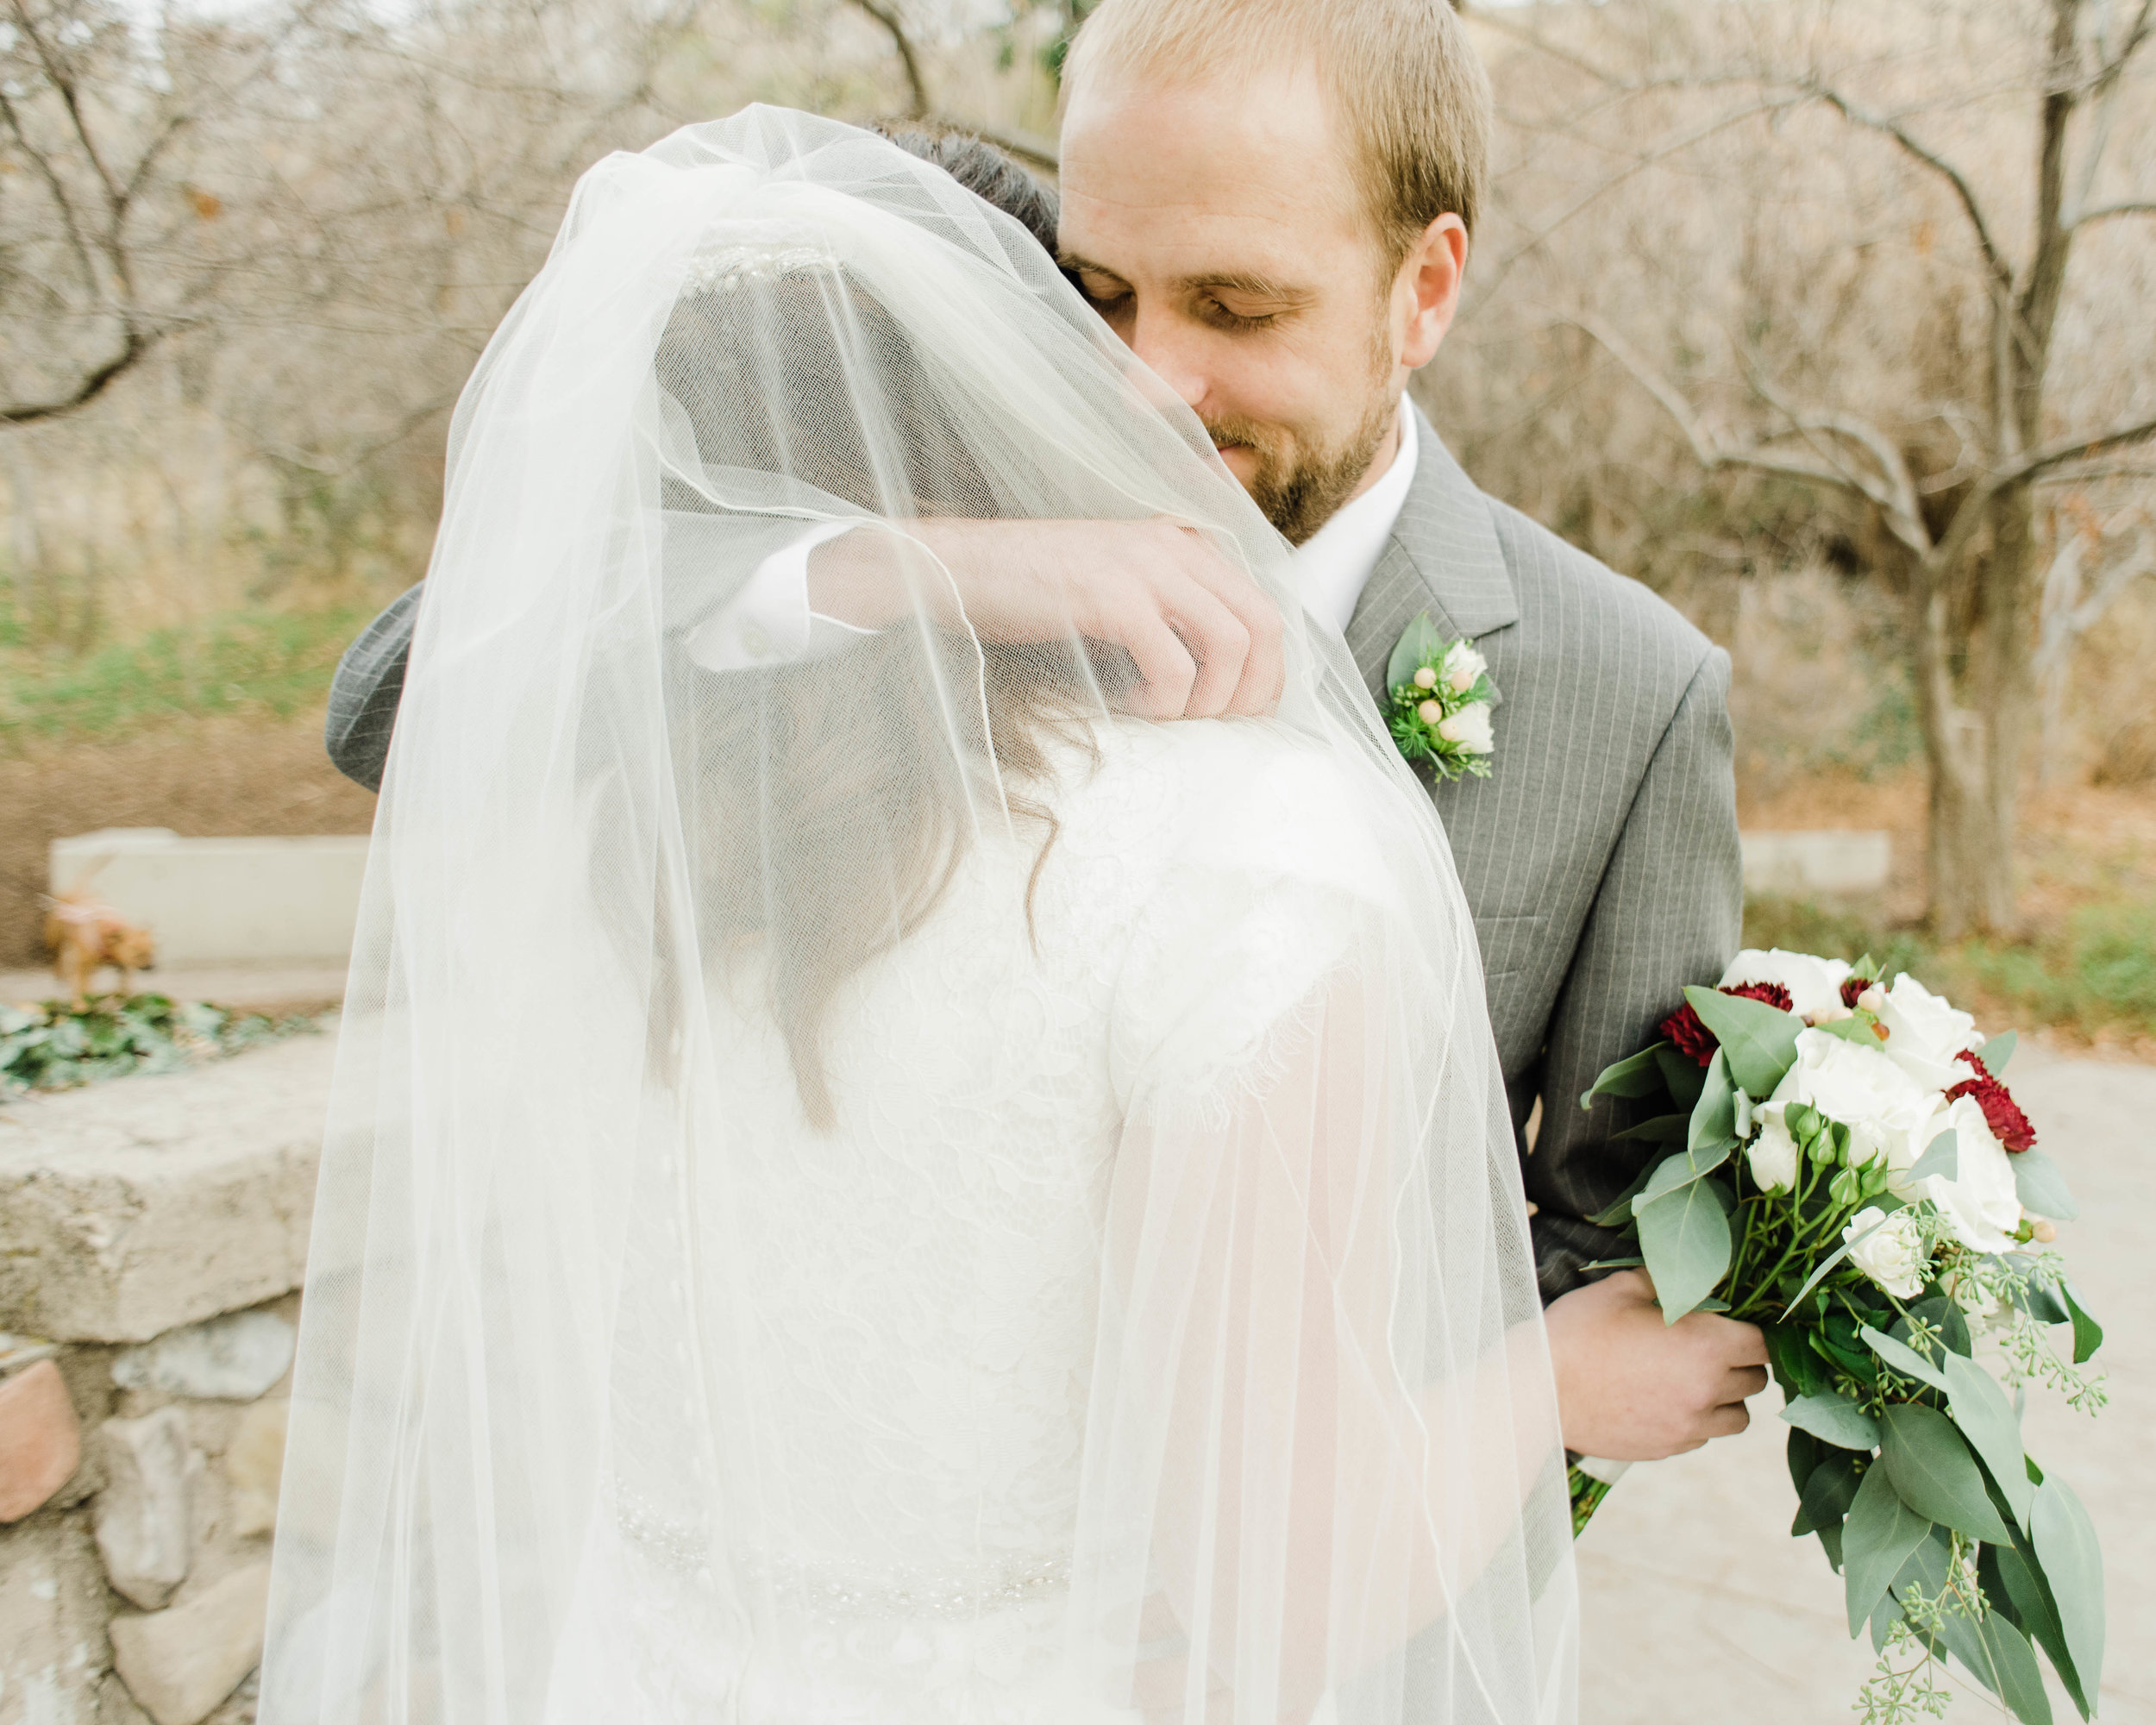 LINDSAY+BRAD-BRIDALS-Sadie_Banks_Photography-23.jpg